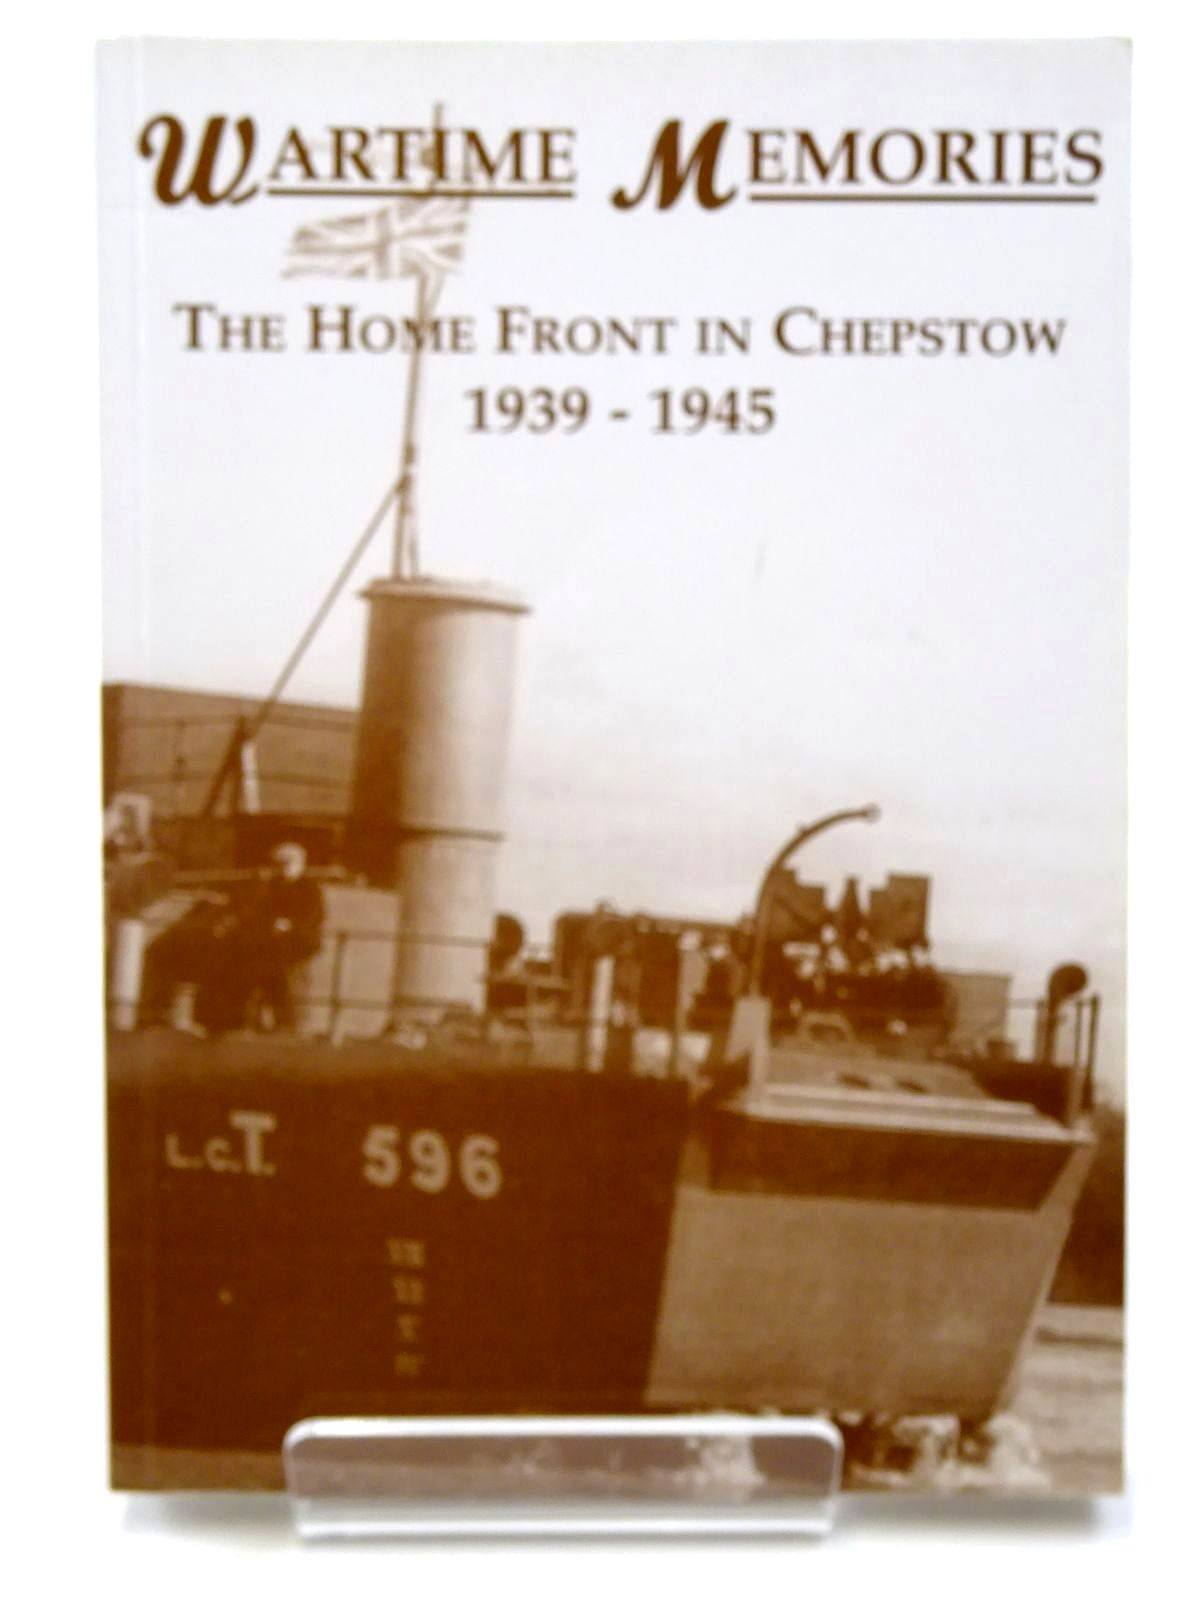 Photo of WARTIME MEMORIES: THE HOME FRONT IN CHEPSTOW 1939-1945 published by The Chepstow Society (STOCK CODE: 2124663)  for sale by Stella & Rose's Books